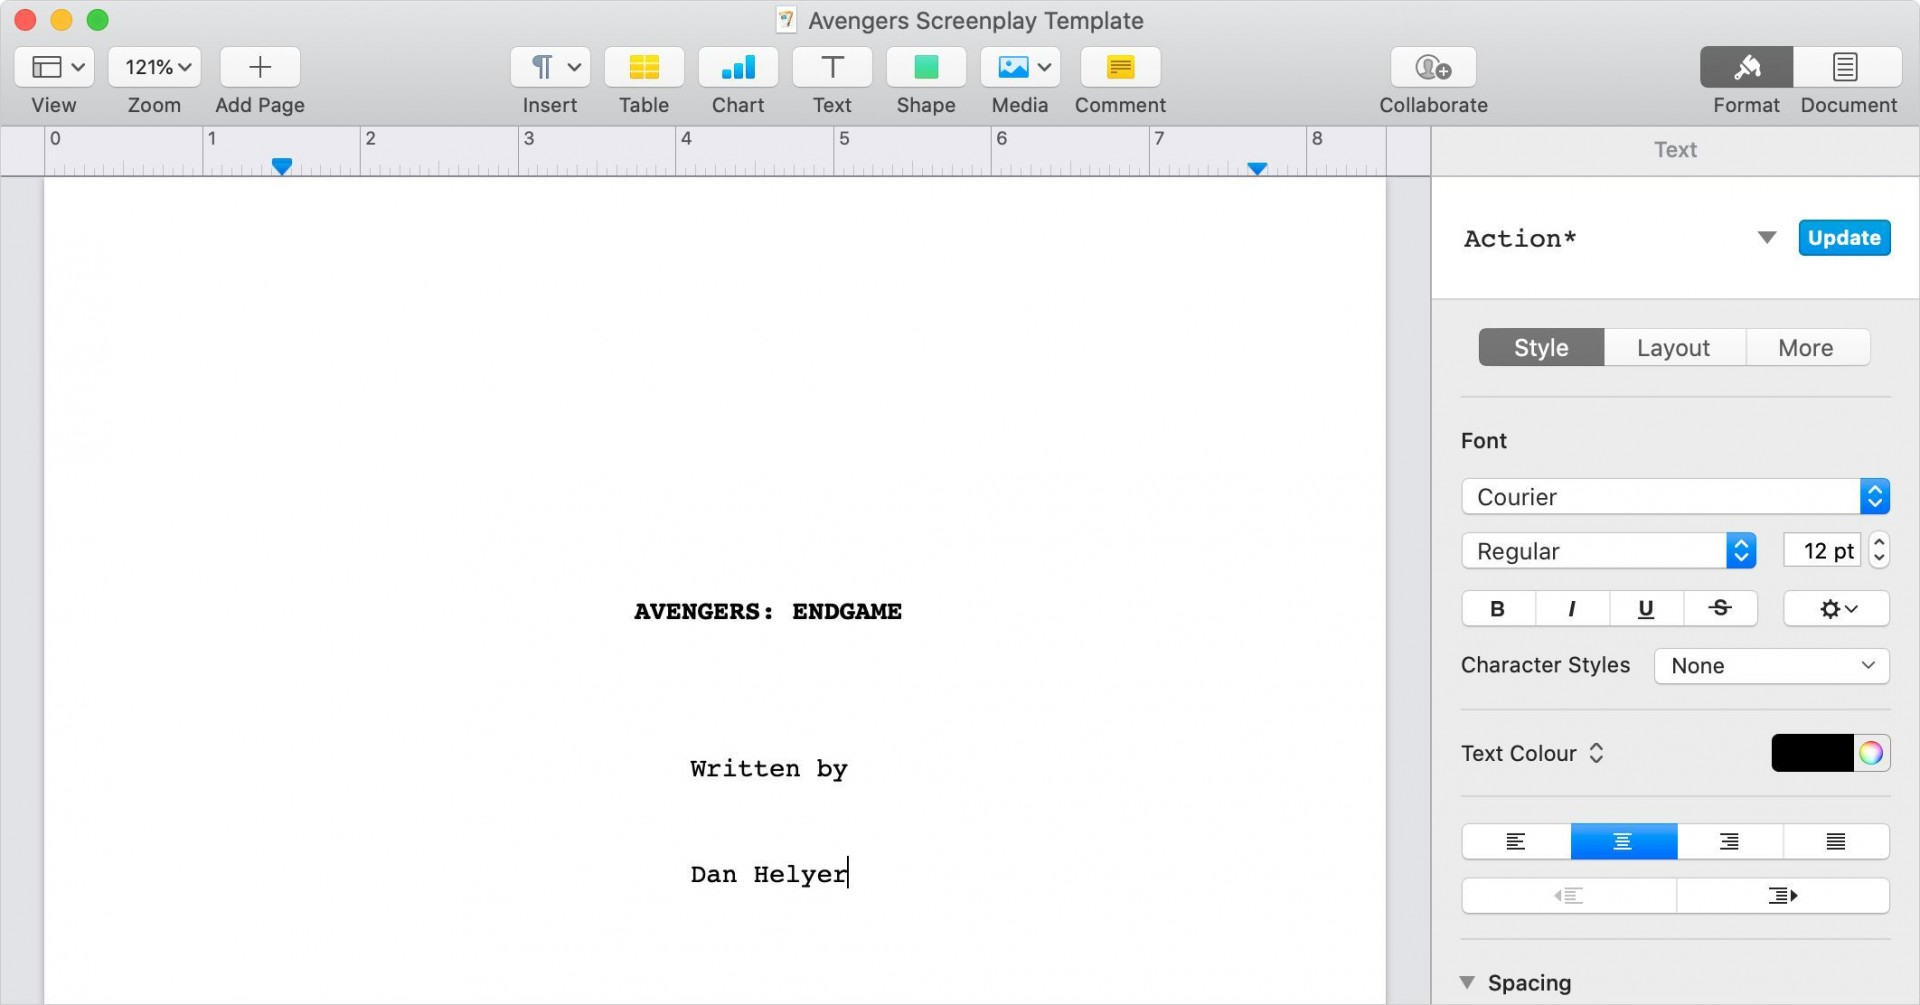 008 Fearsome How To Use Microsoft Word Screenplay Template Design 1920